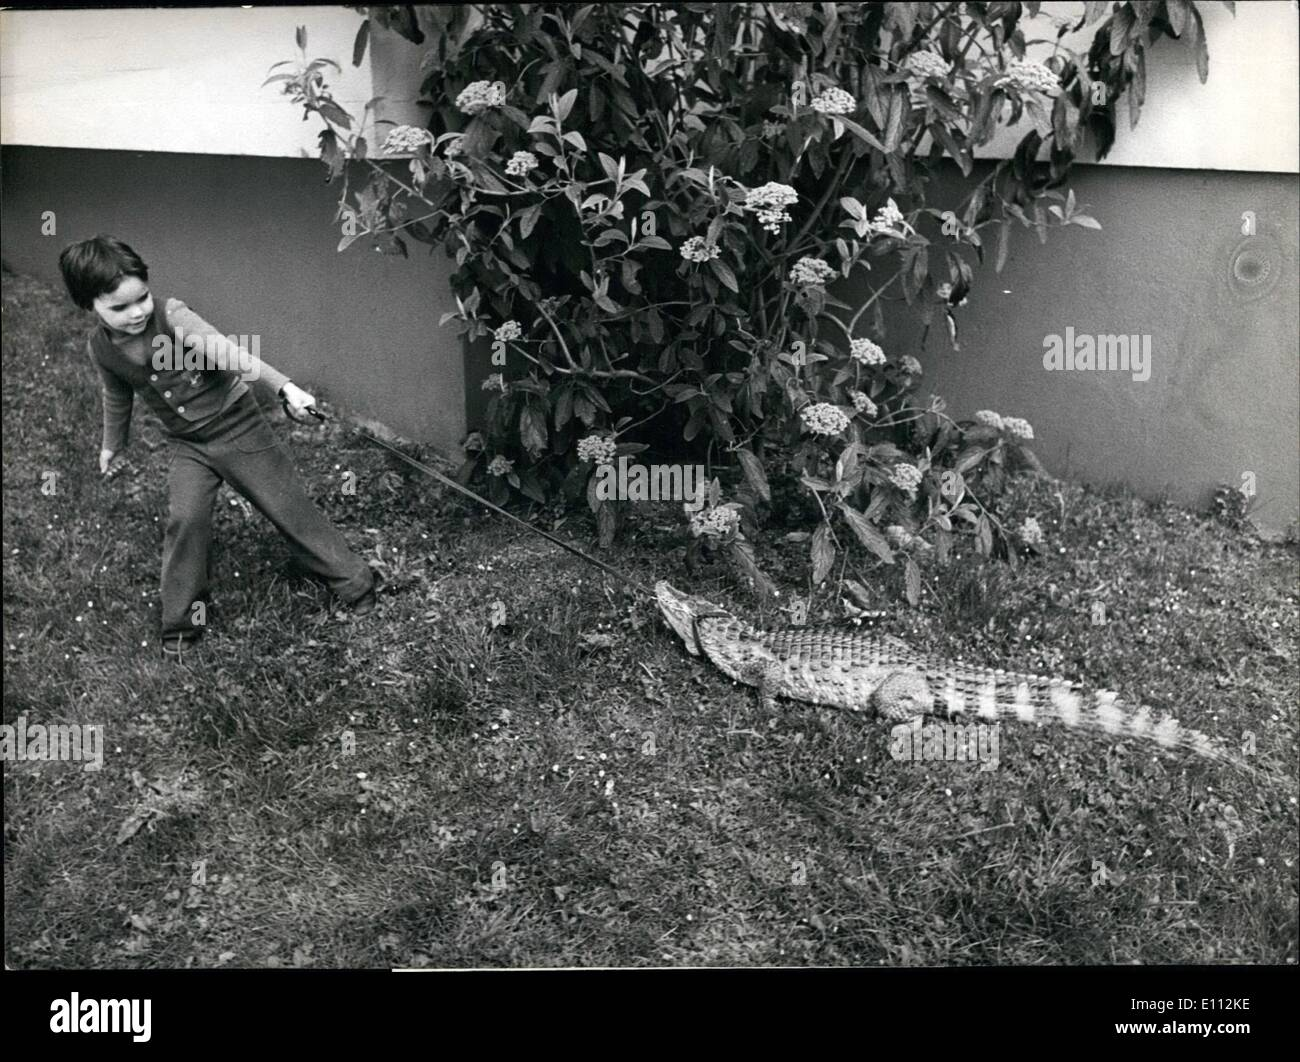 May 05, 1975 - A crocodile at home: A 35-kilogram-crocodile is hold at home by this woman. The animal is named ''Wotan'' and goes for a walk with the girl of the house if it does. - Stock Image